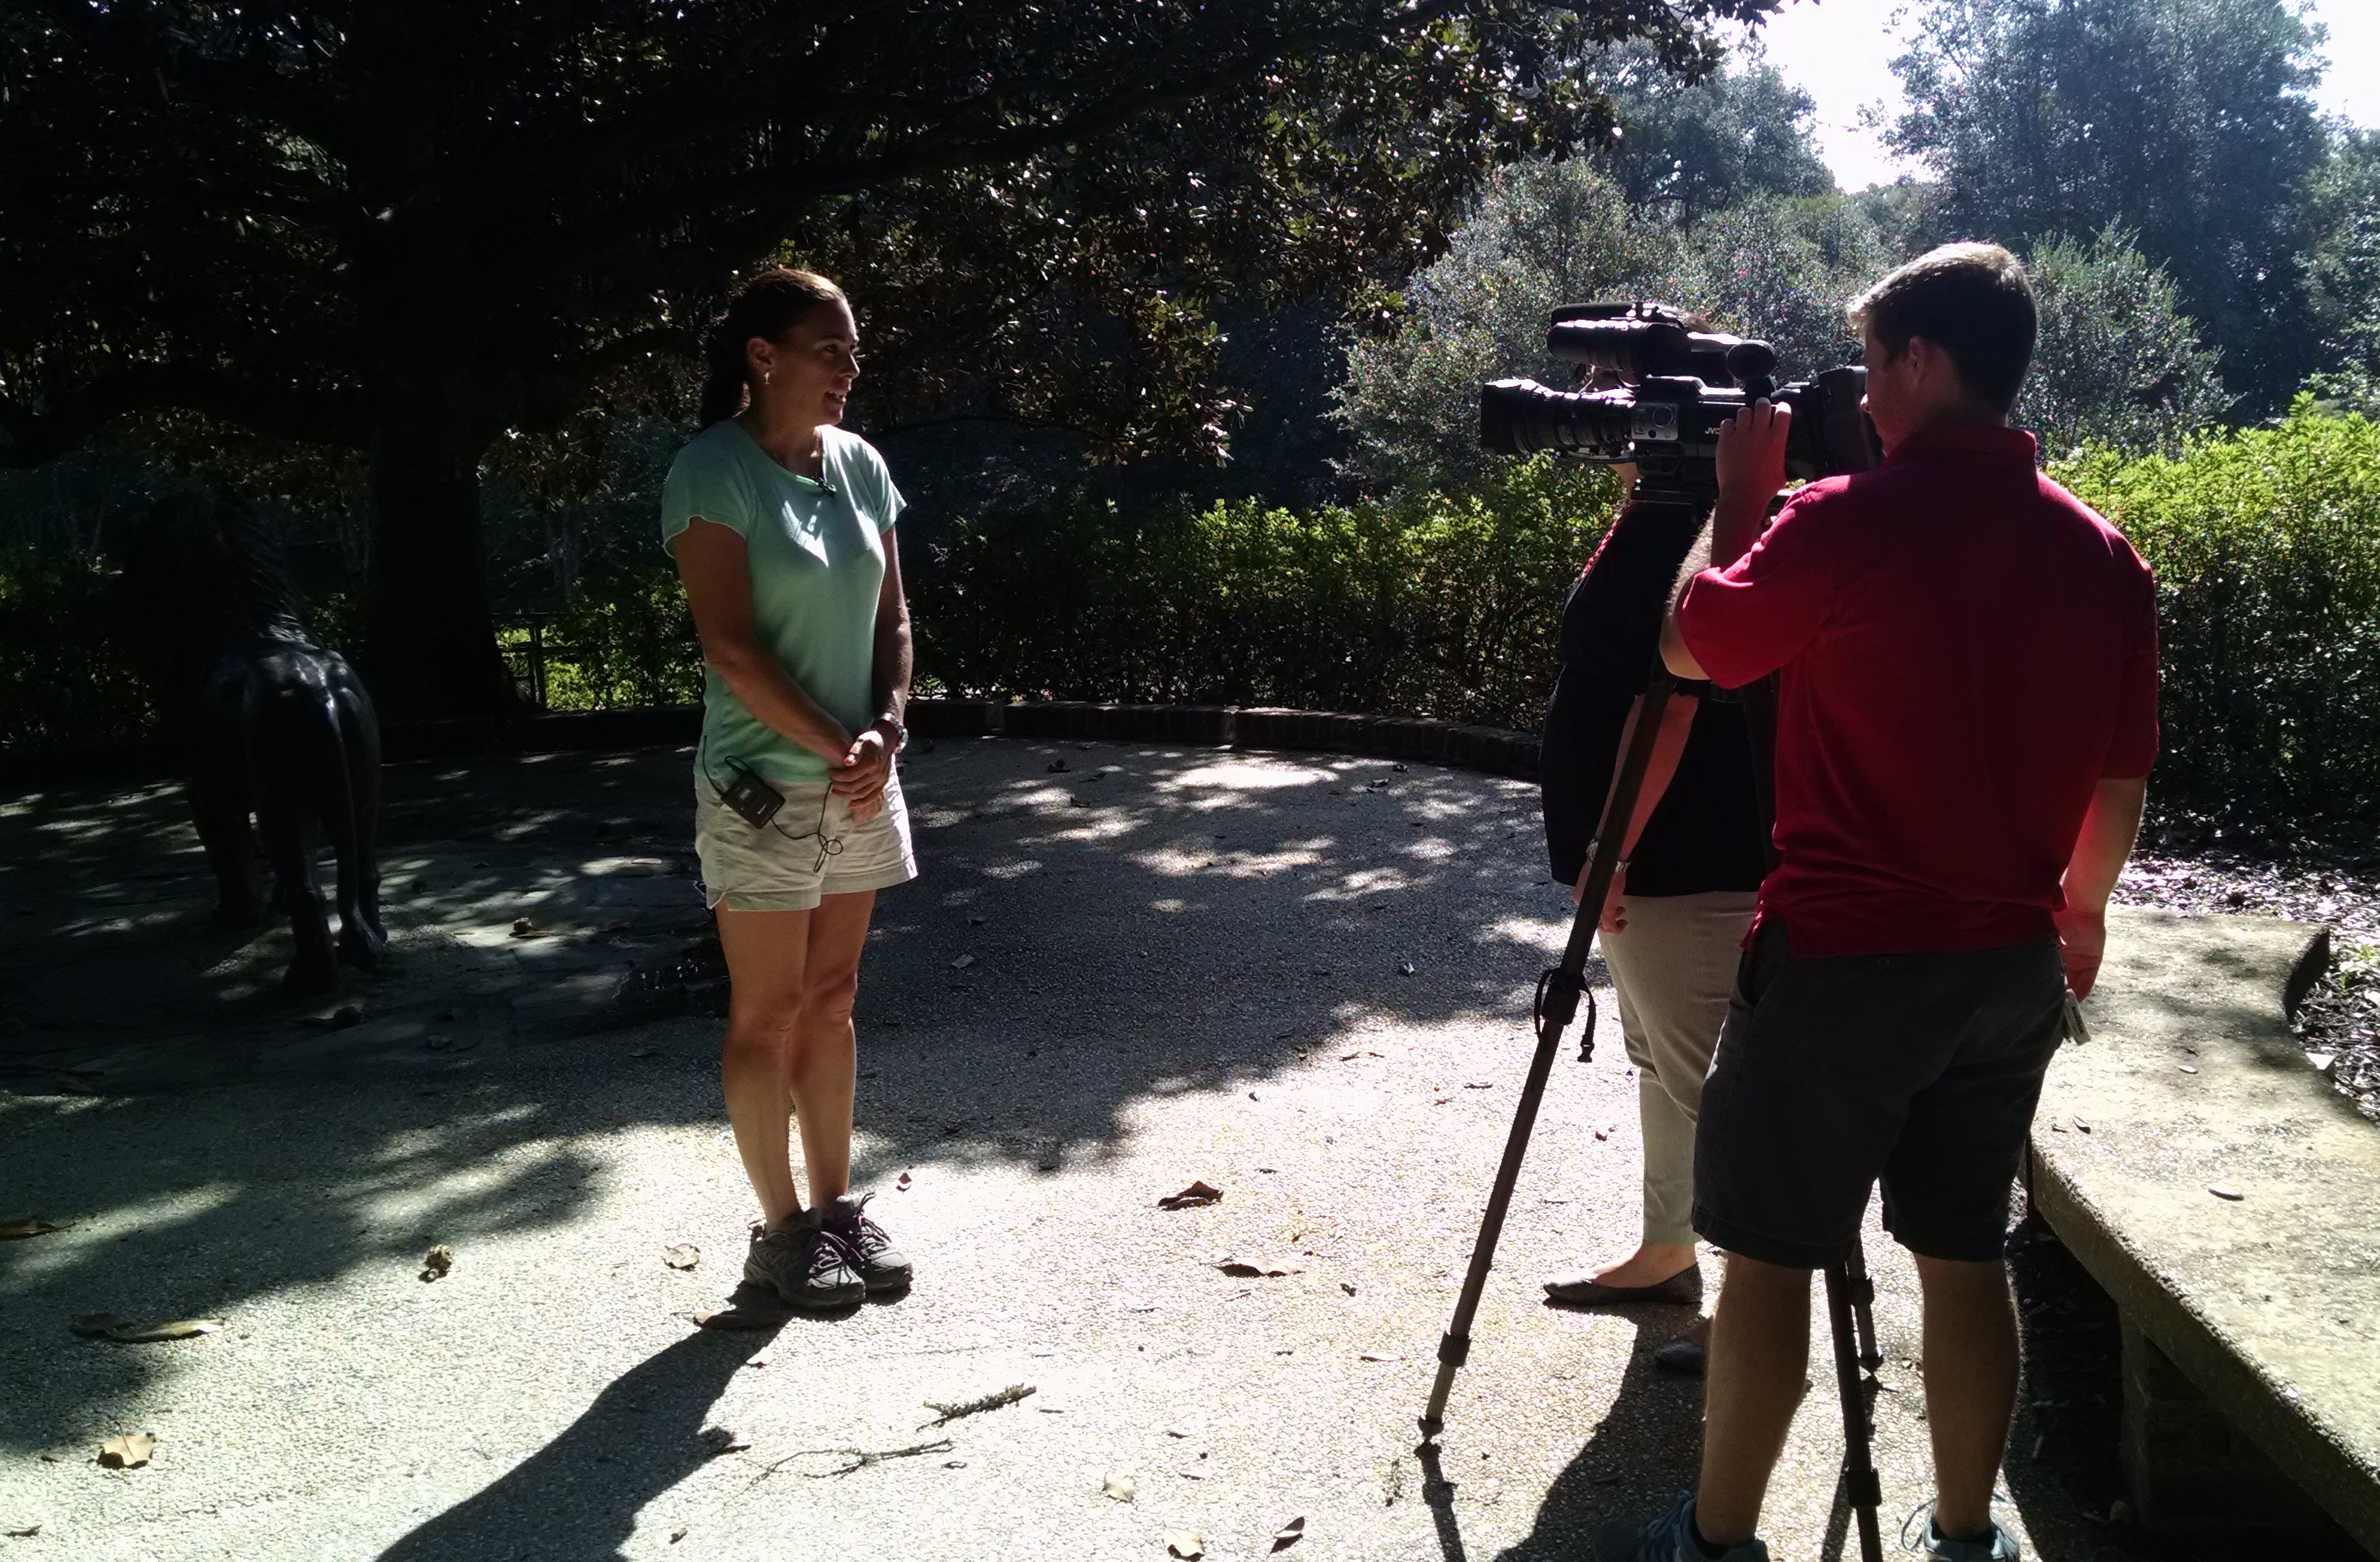 Melissa Wells, supervisor of Magic Christmas in Lights, talks with Katie Herrera and Stephen Smith of Local 15 WPMI on Sept. 8, 2015, as the Bellingrath crew hangs lights on one of the paths along Mirror Lake.